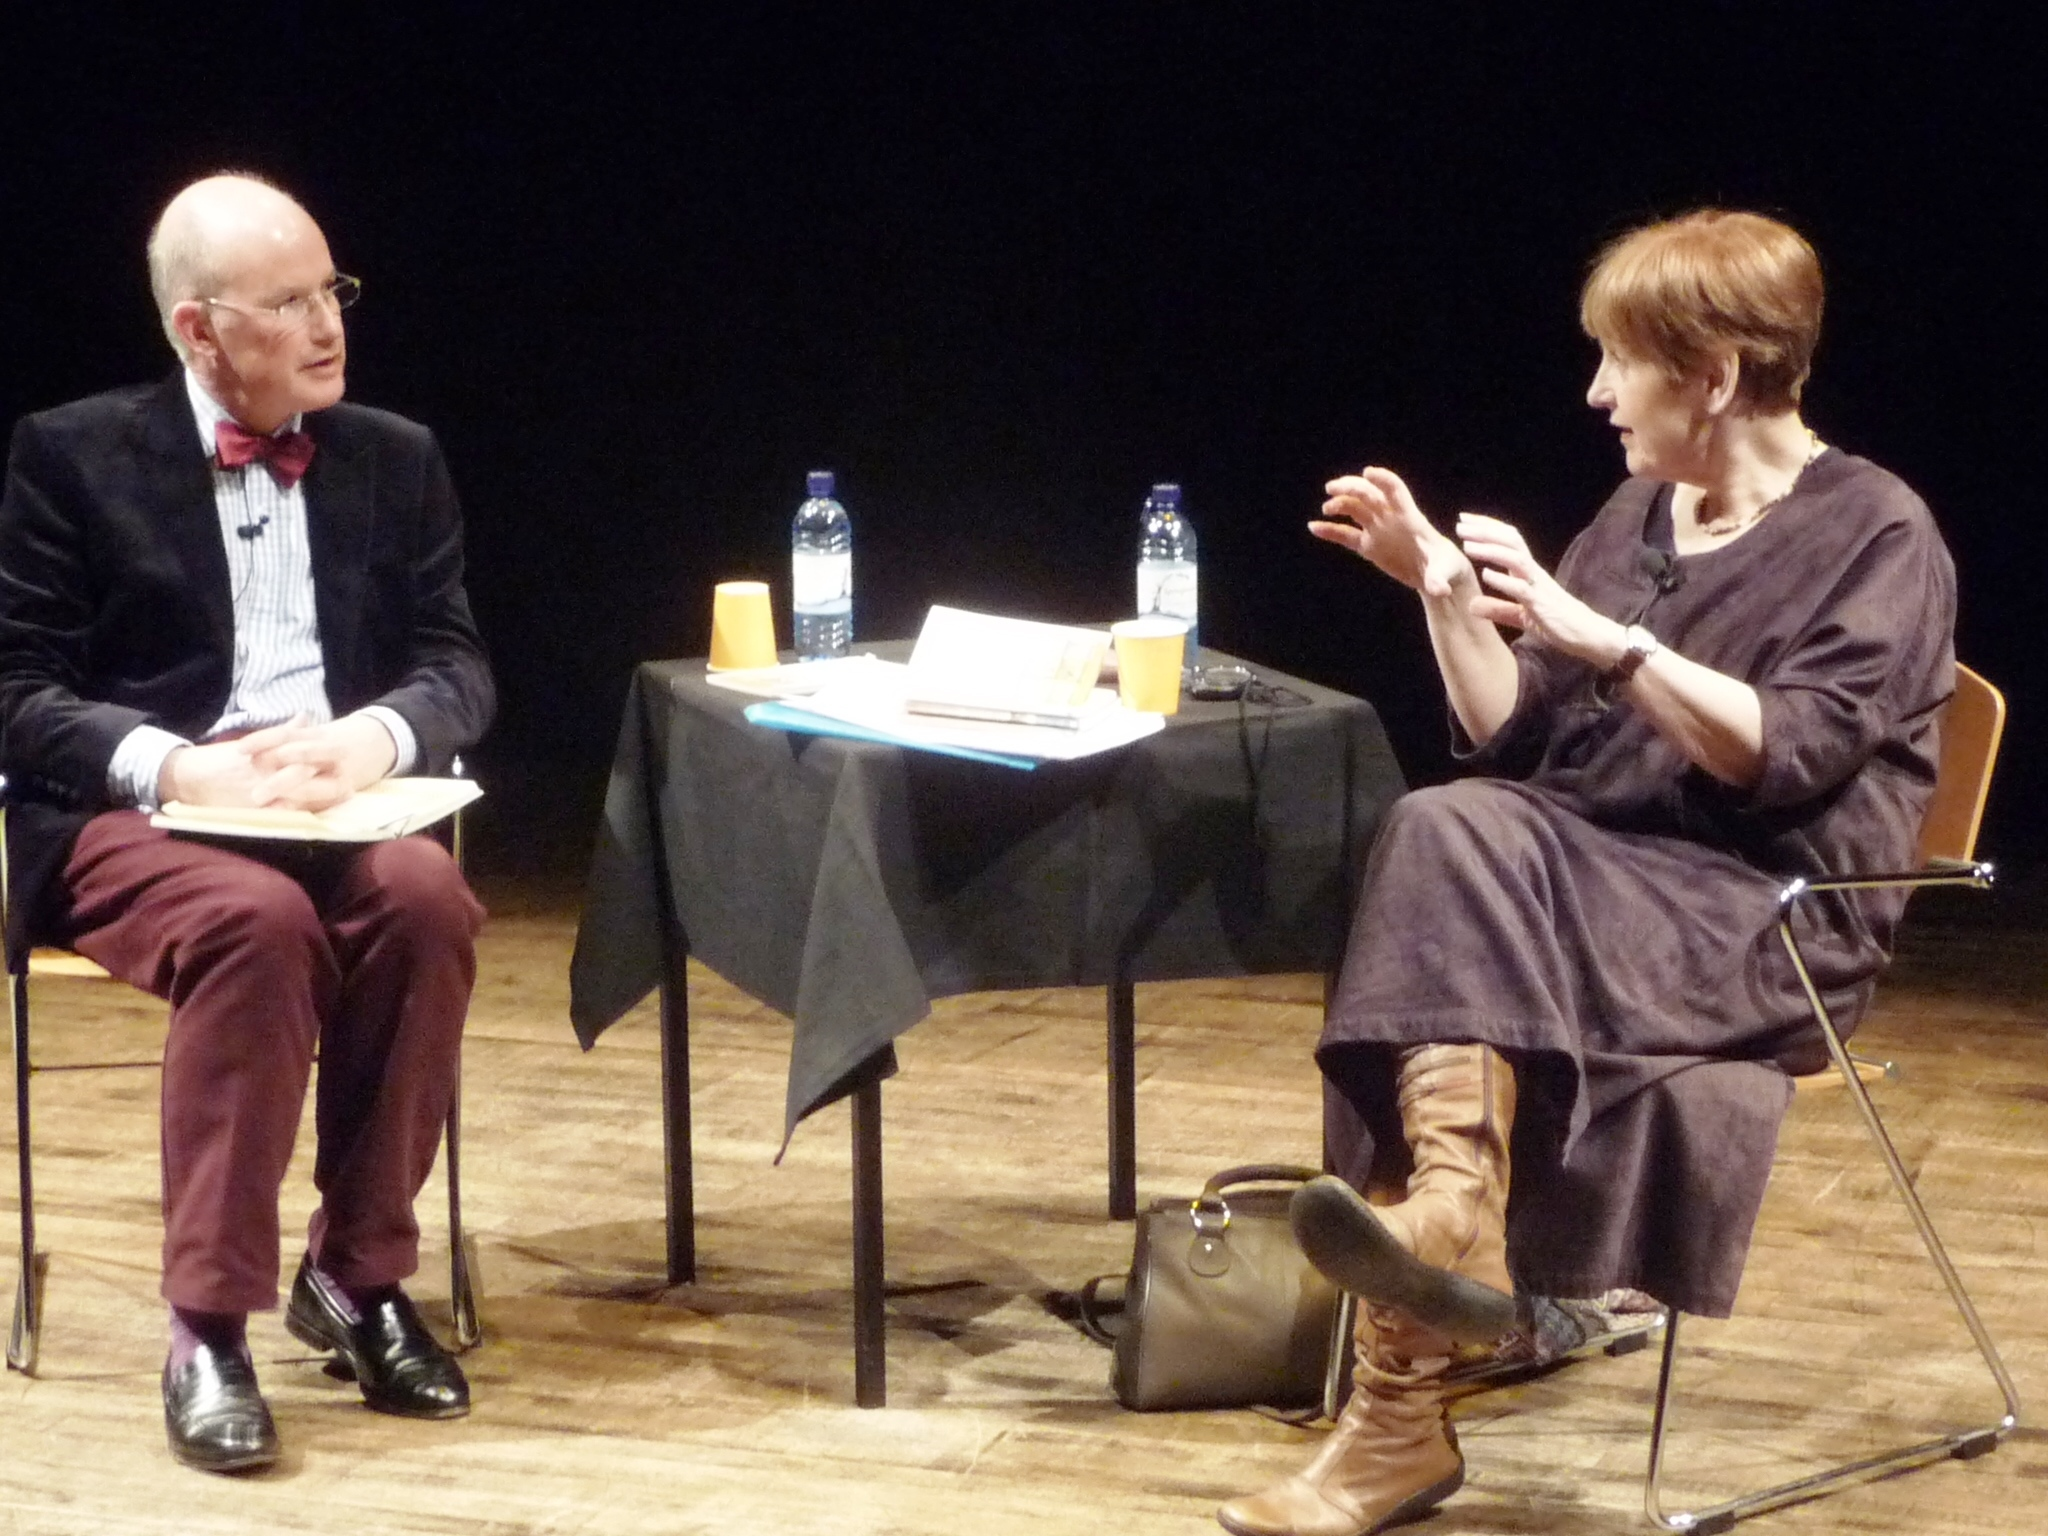 The King's School's head of English, Andrew Maund, interviewing poet Wendy Cope at Words Alive